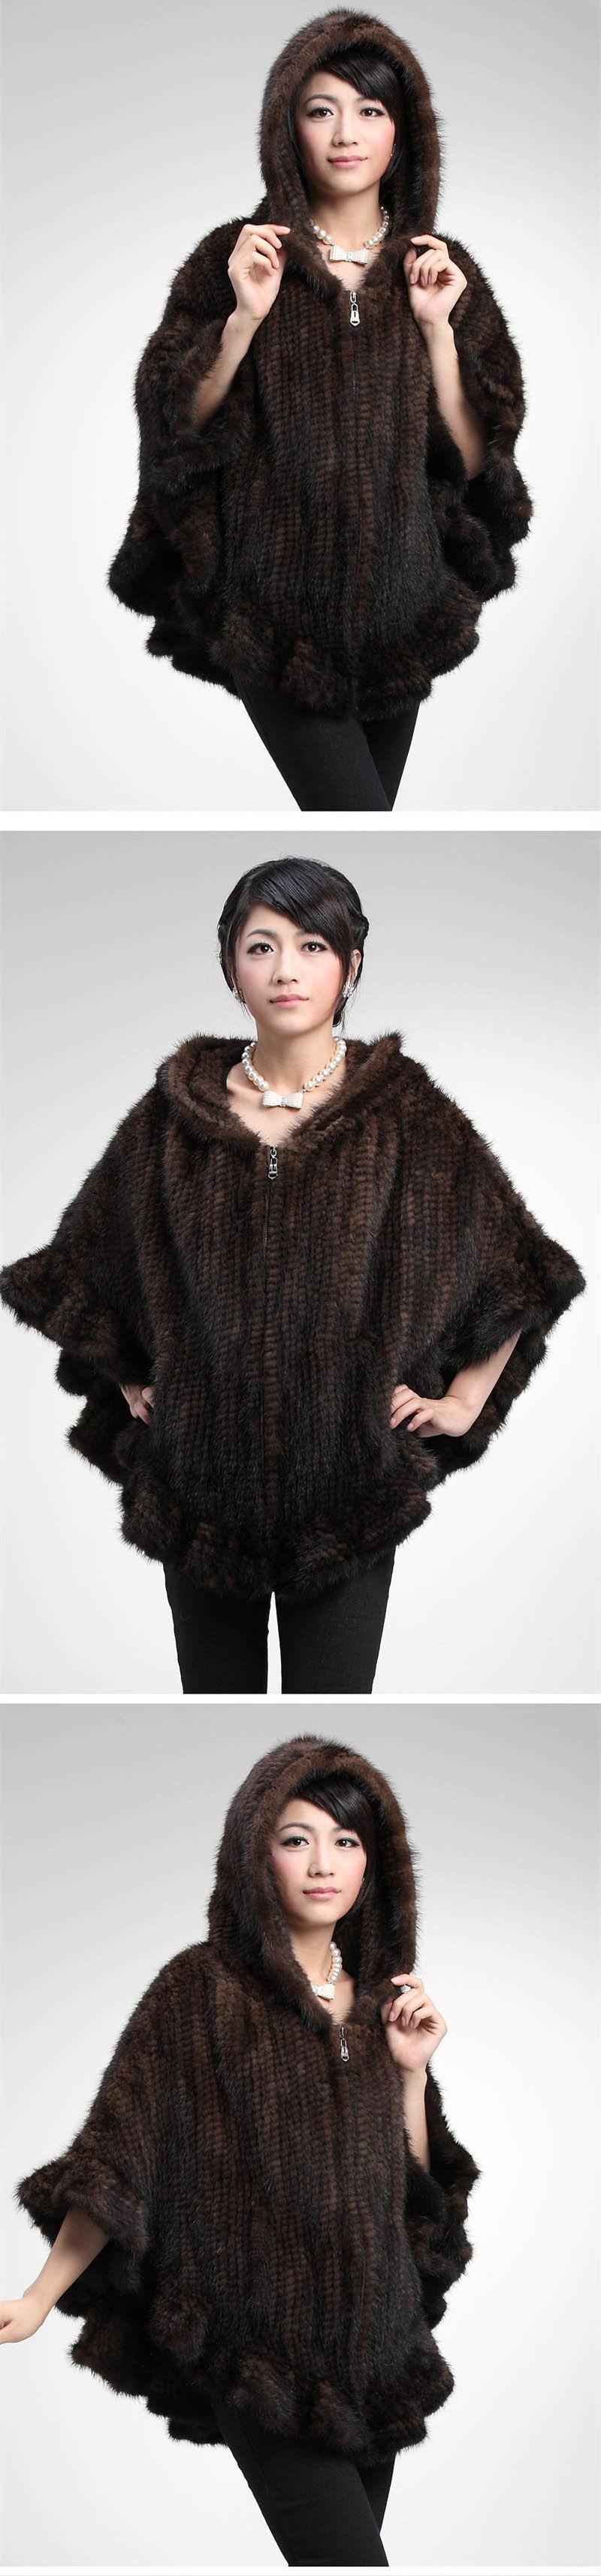 Factory Direct Genuine Mink Fur Shawl Women Natural Mink Fur Poncho With Hood Winter Knitted Mink Fur Jacket DL6191 (1)